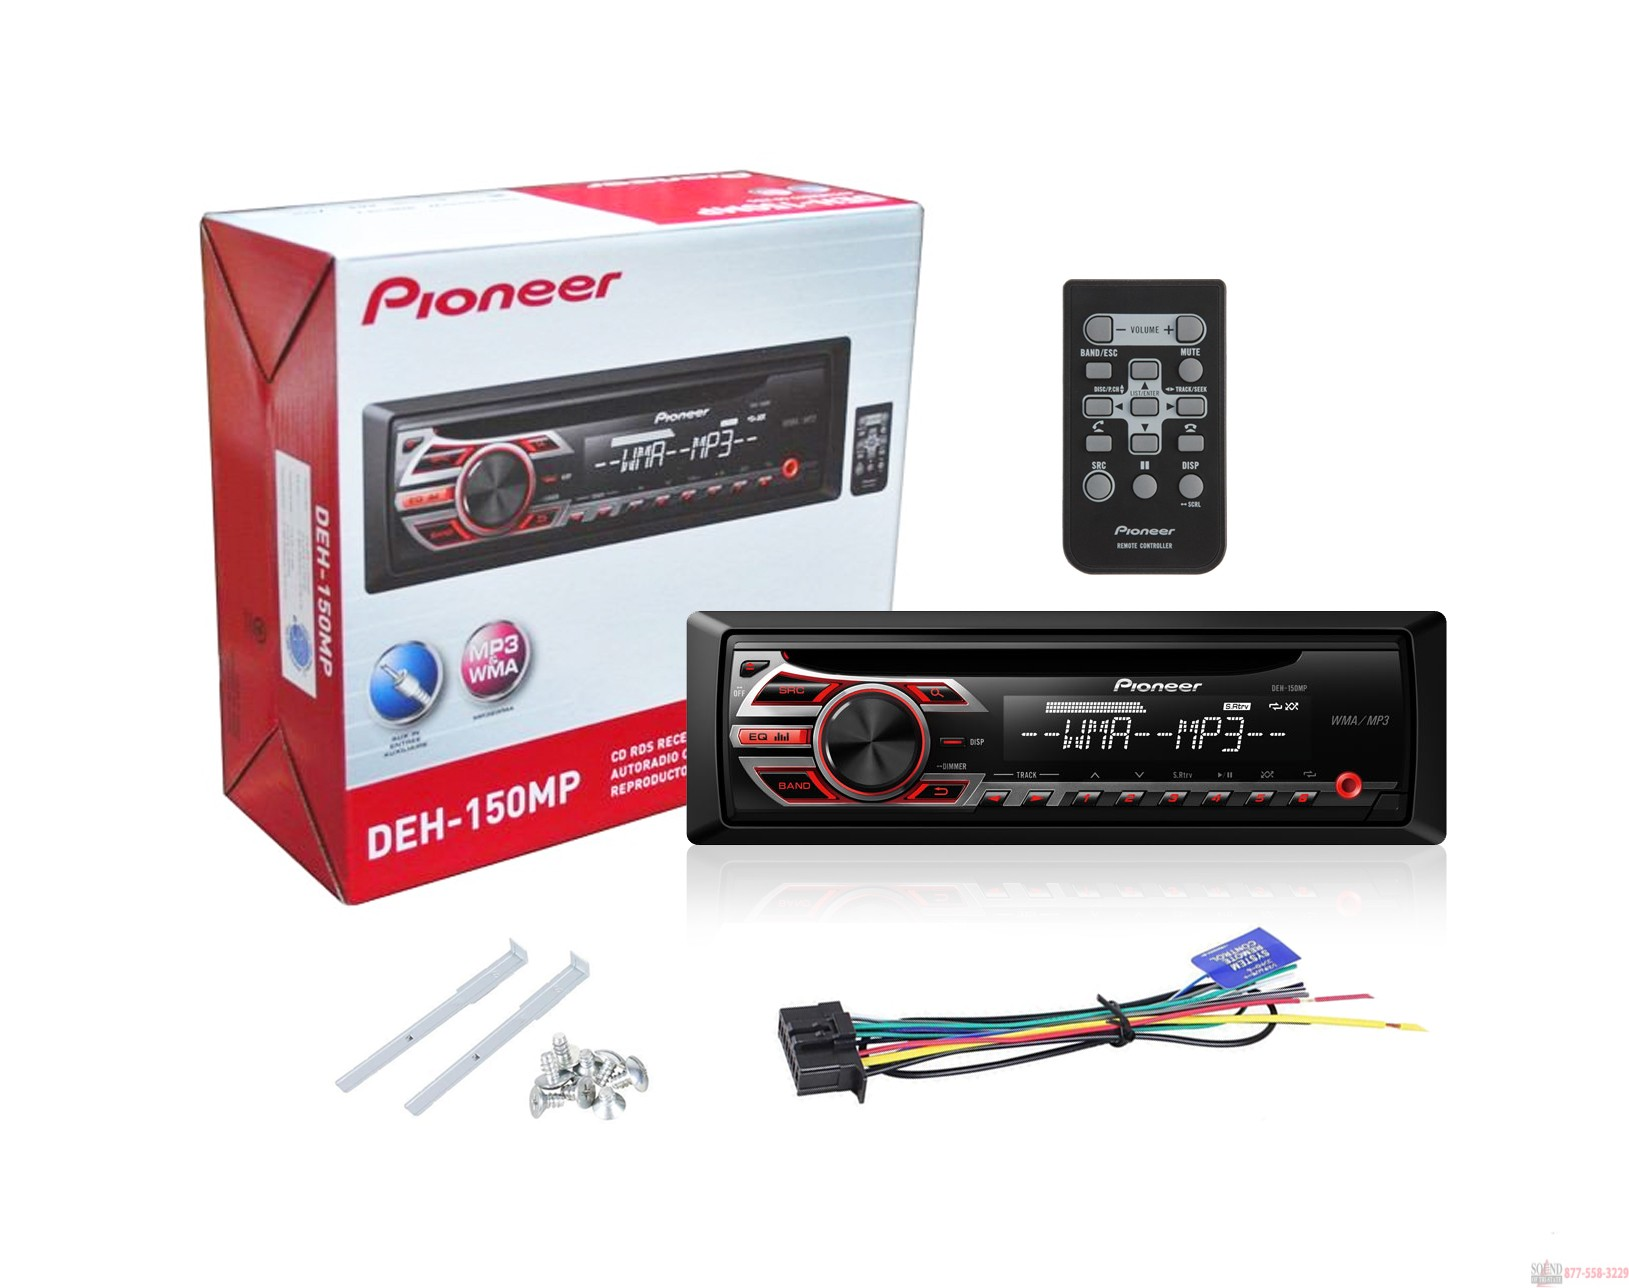 Pioneer DEH 150MP Car Stereo With MP3 Playback in box pioneer stereo wiring diagram pioneer free wiring diagrams pioneer deh-p9300 wiring diagram at soozxer.org